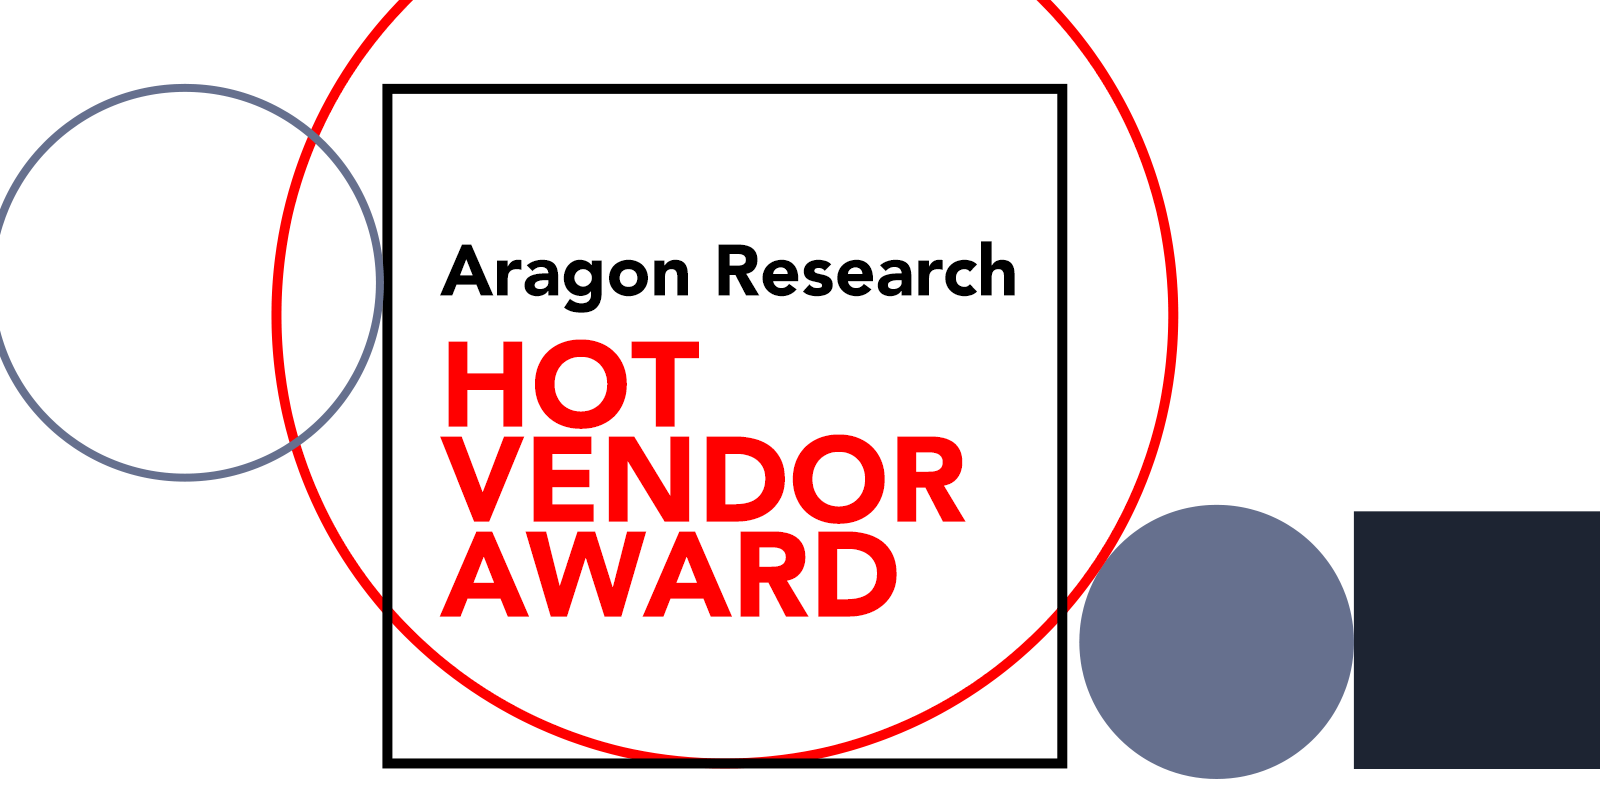 Invoca Named a Hot Vendor in Conversational Intelligence by Aragon Research